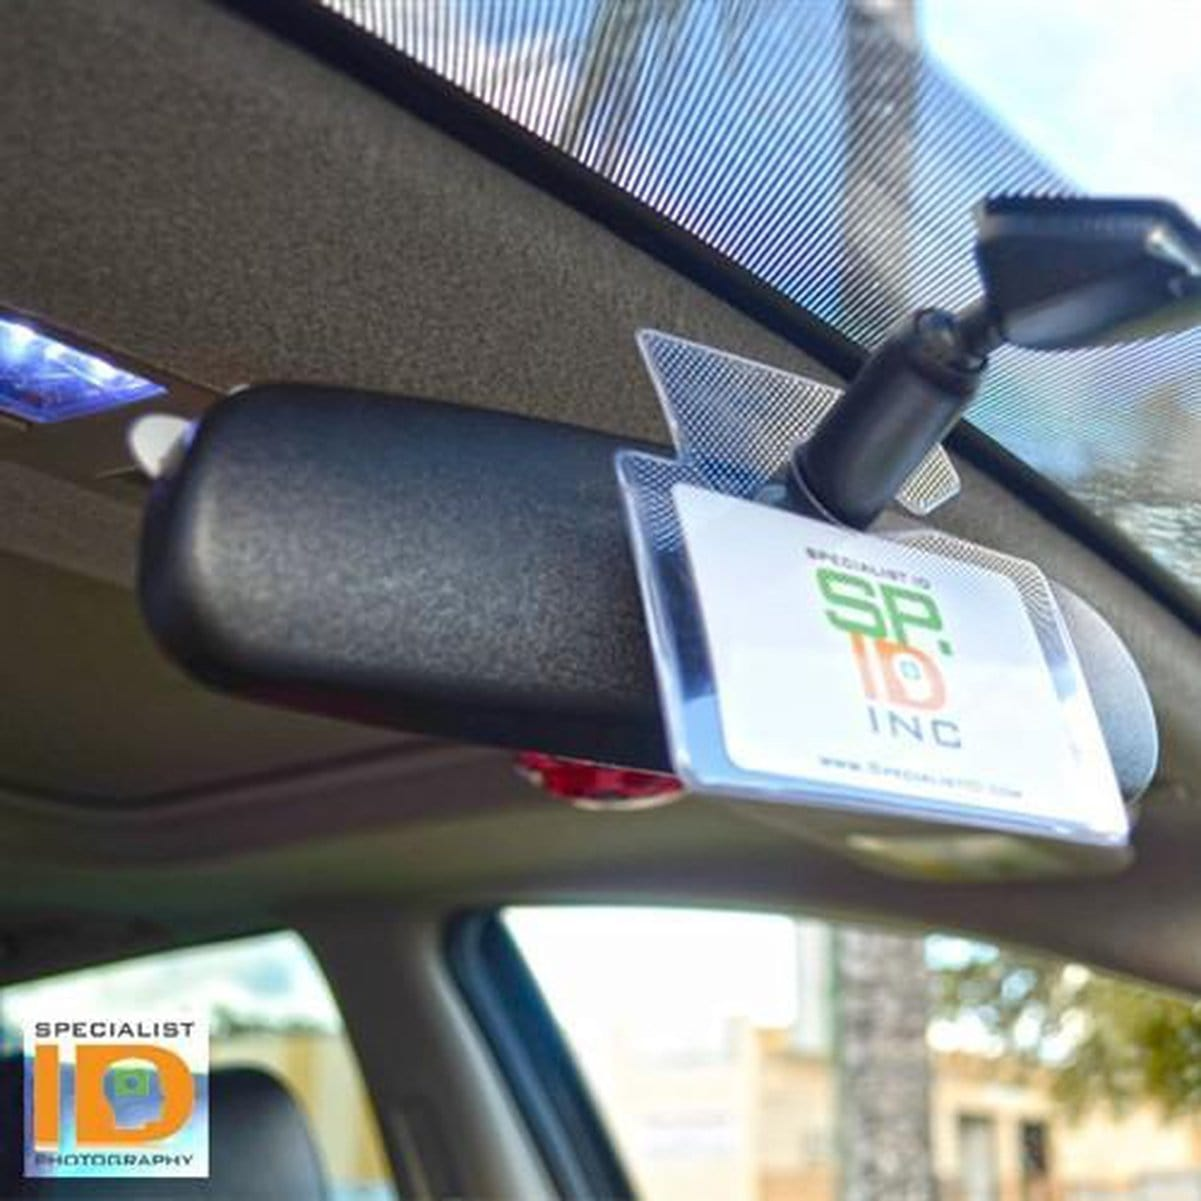 Hang Tag Holder shown on rear view mirror of car